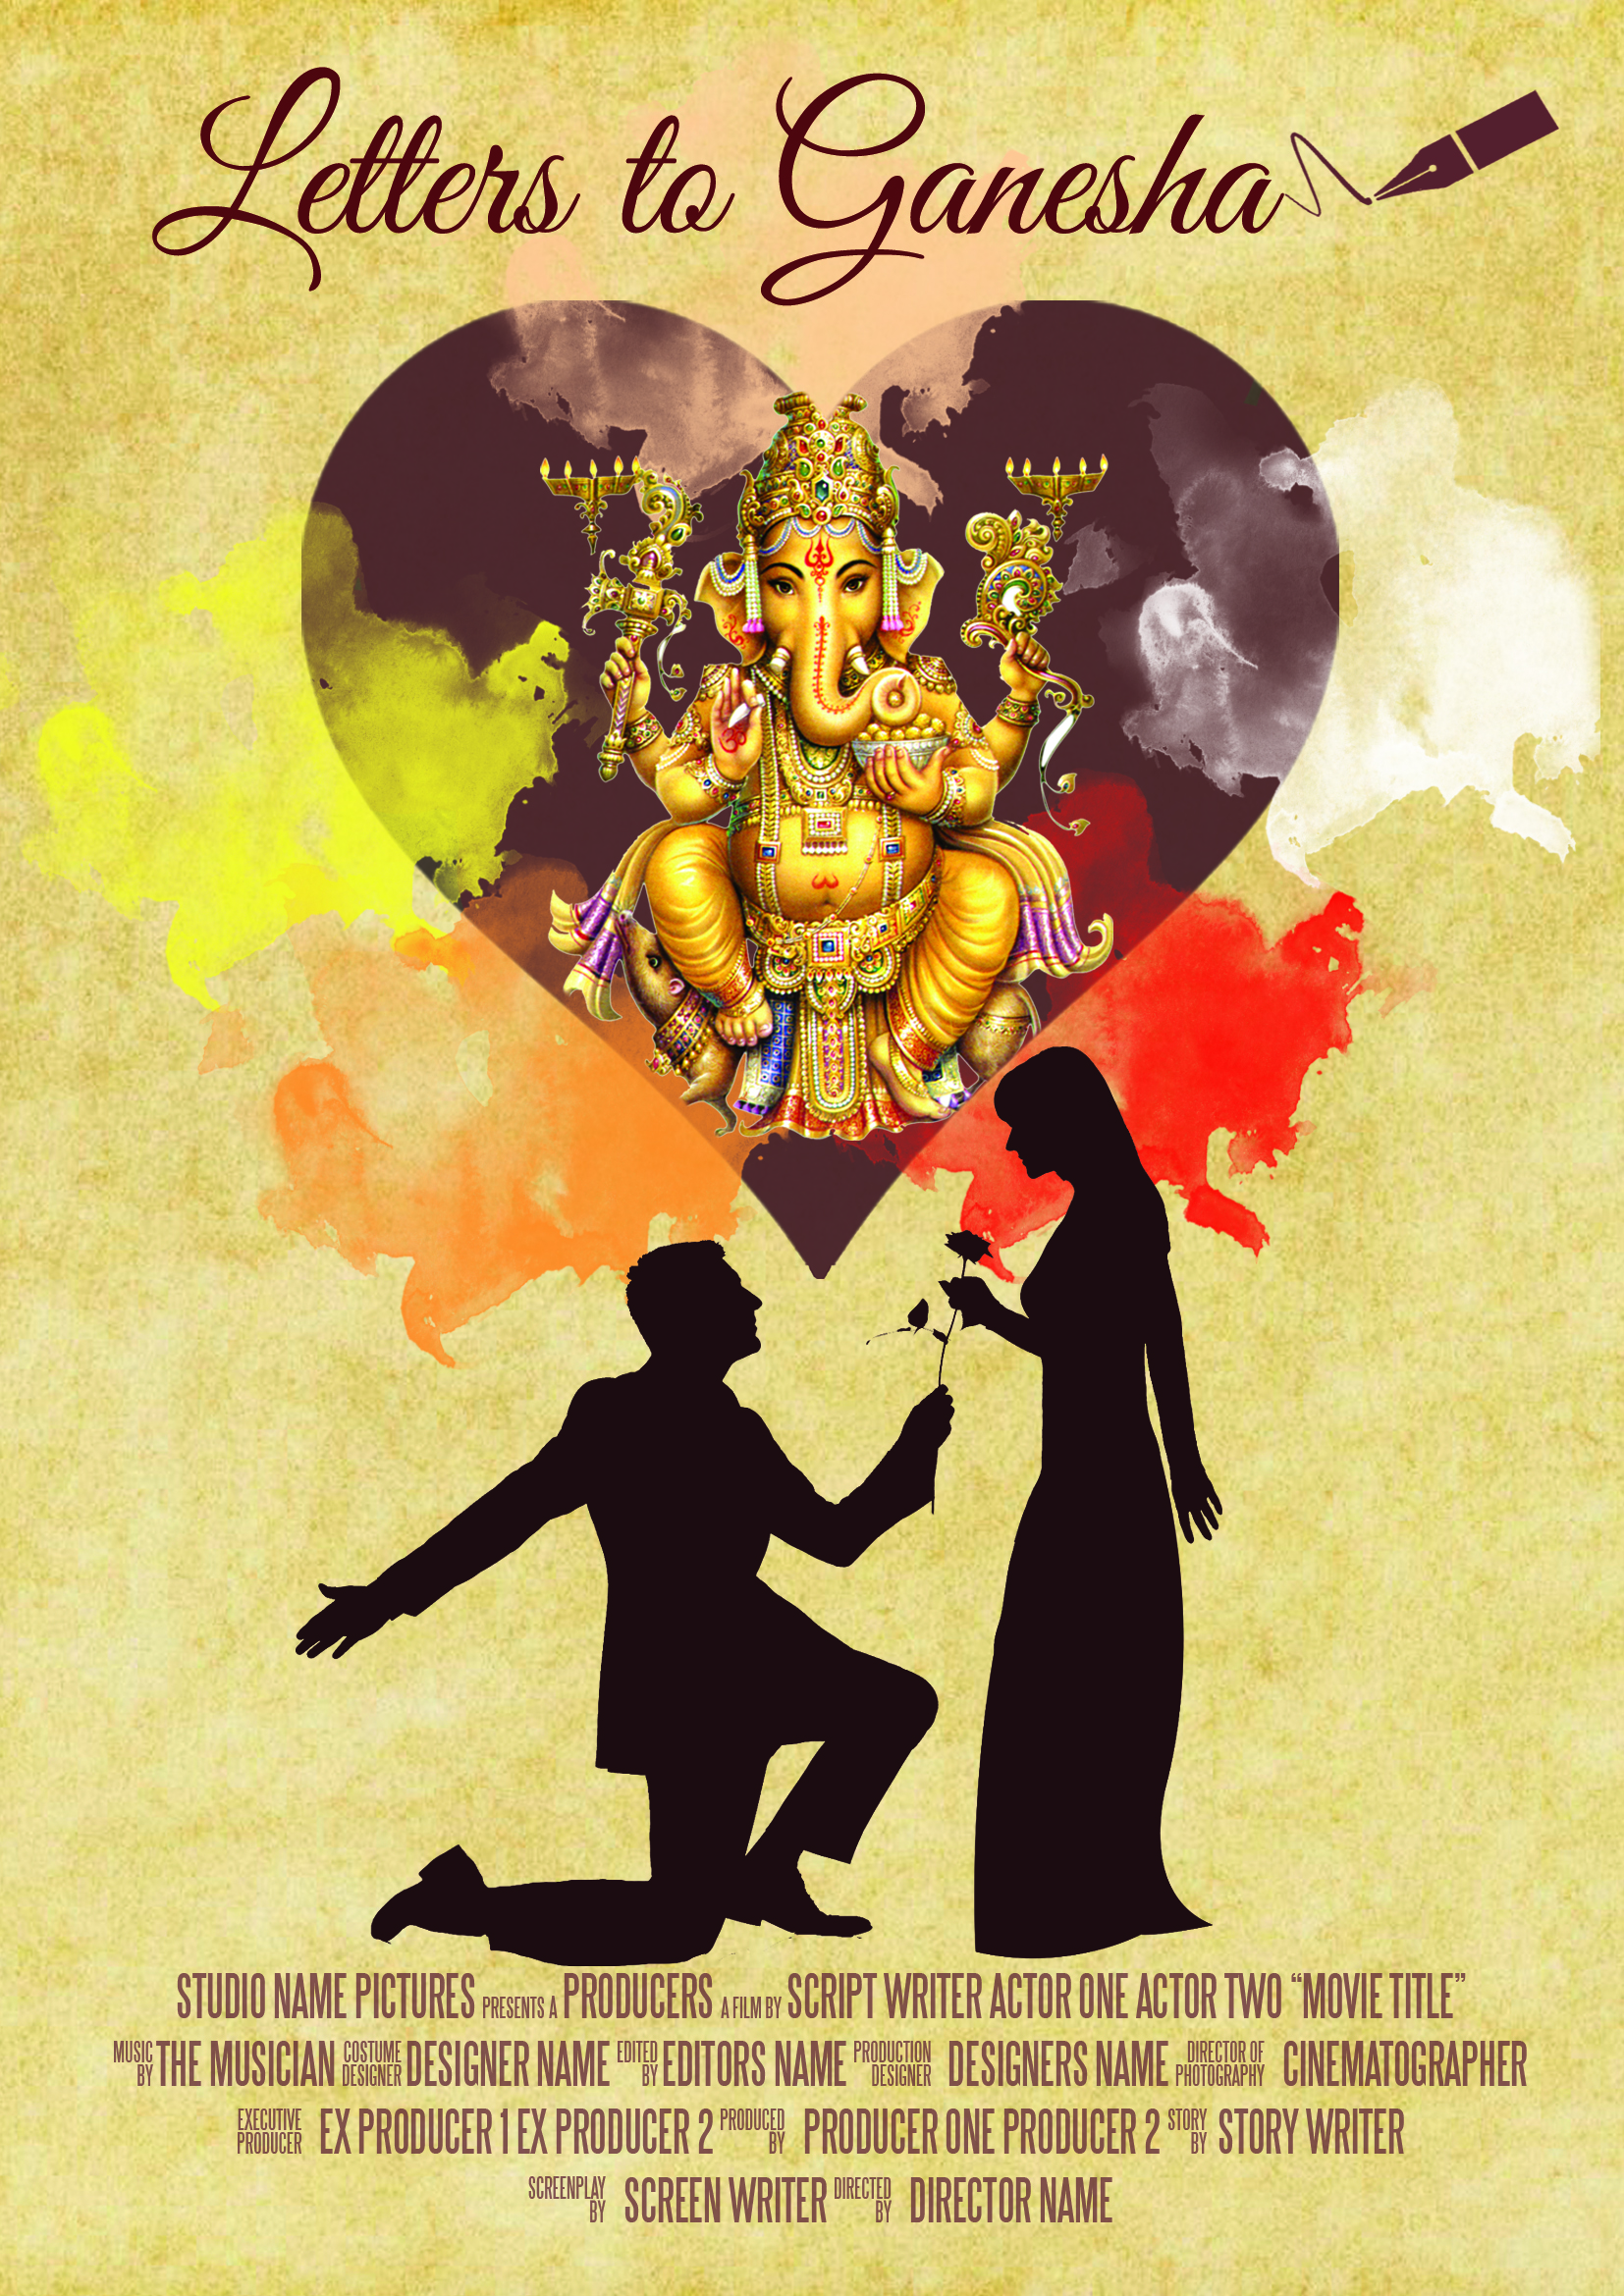 Letters to Ganesh - Photo Gallery - IMDb